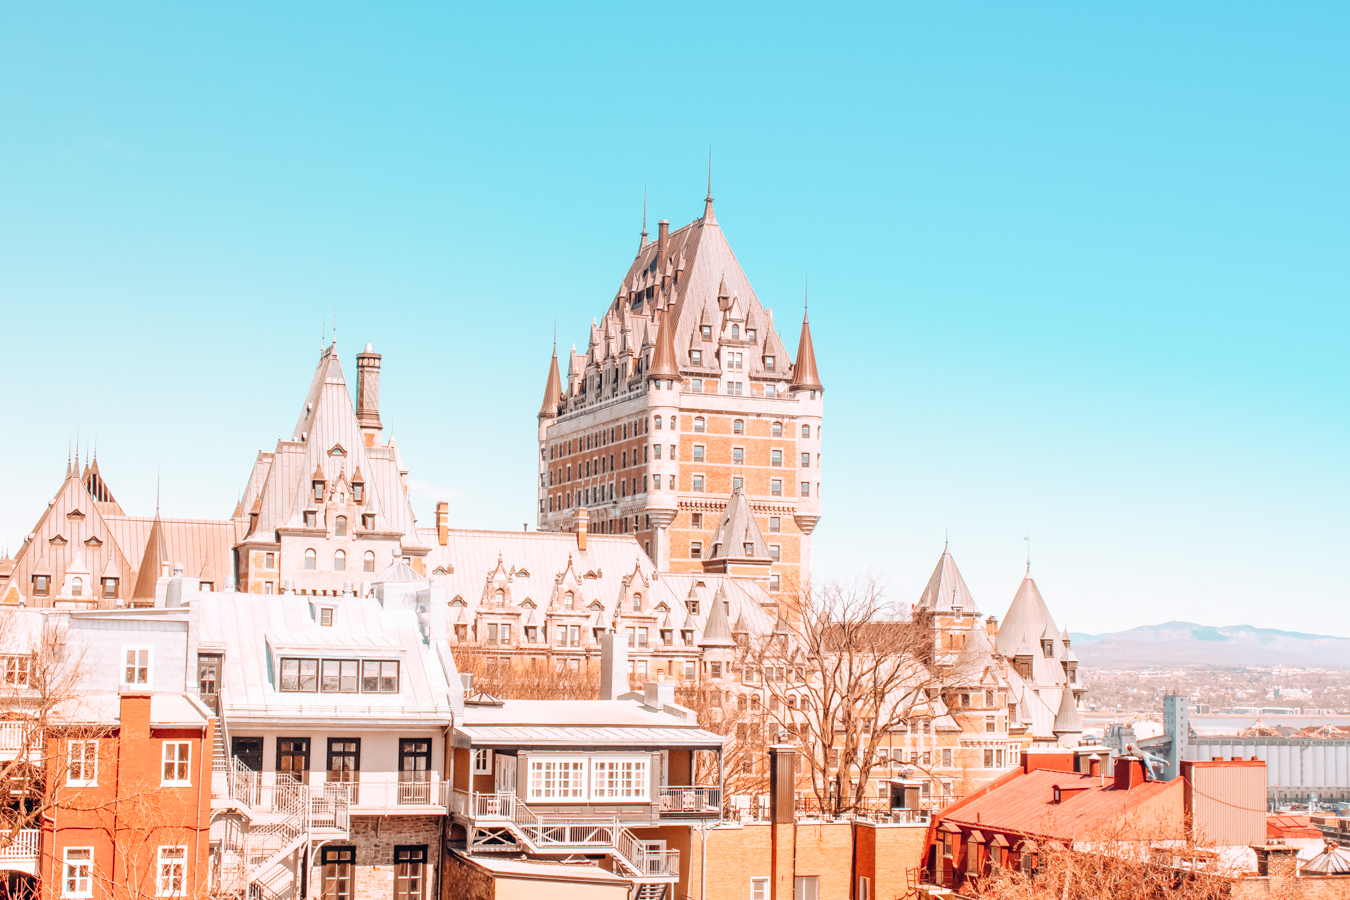 View of buildings in Quebec City